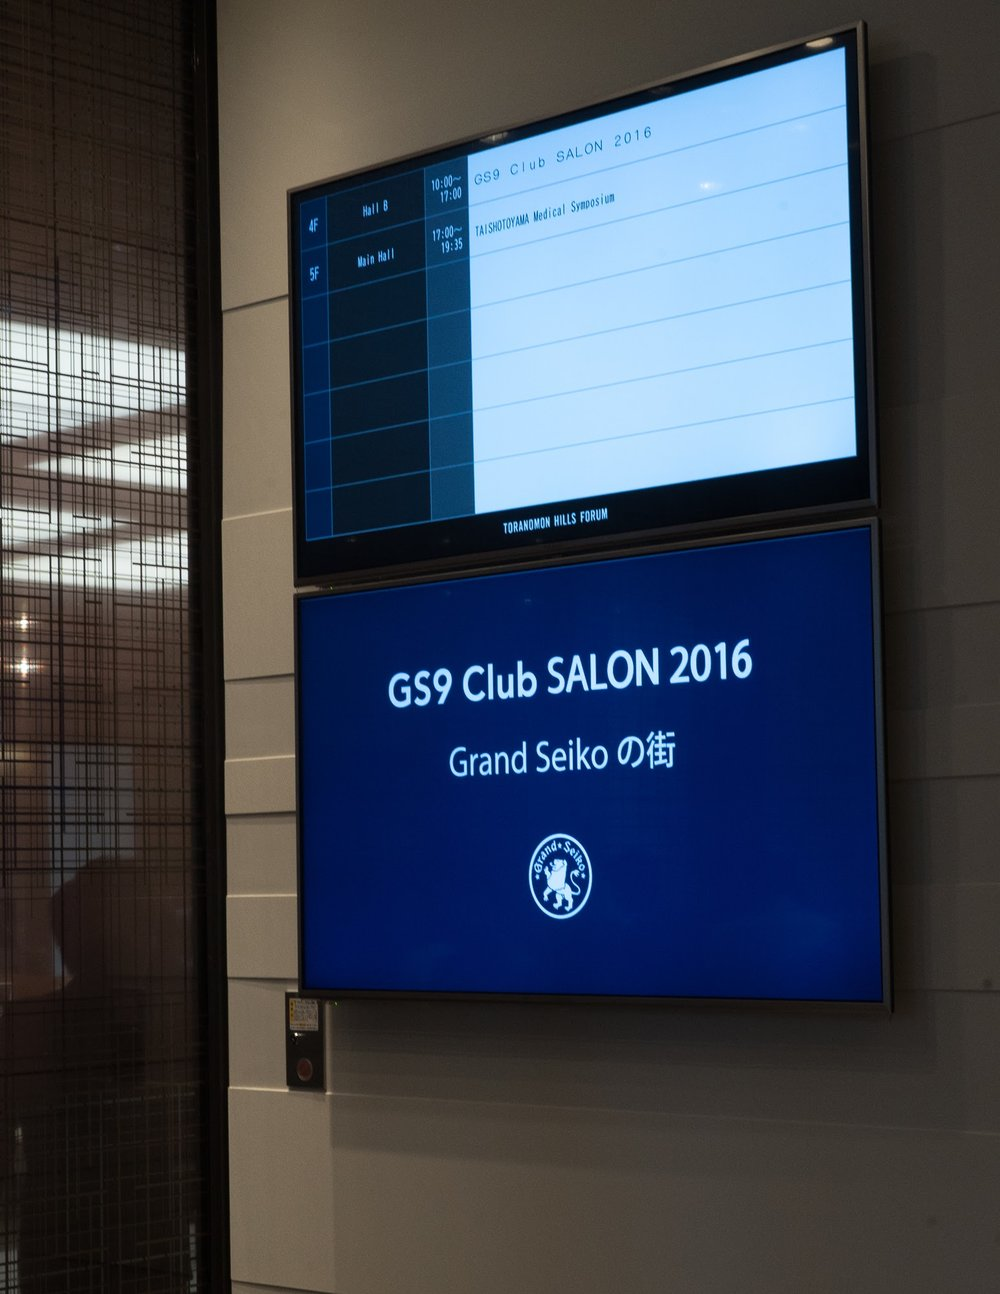 GS9 Club Salon 2016